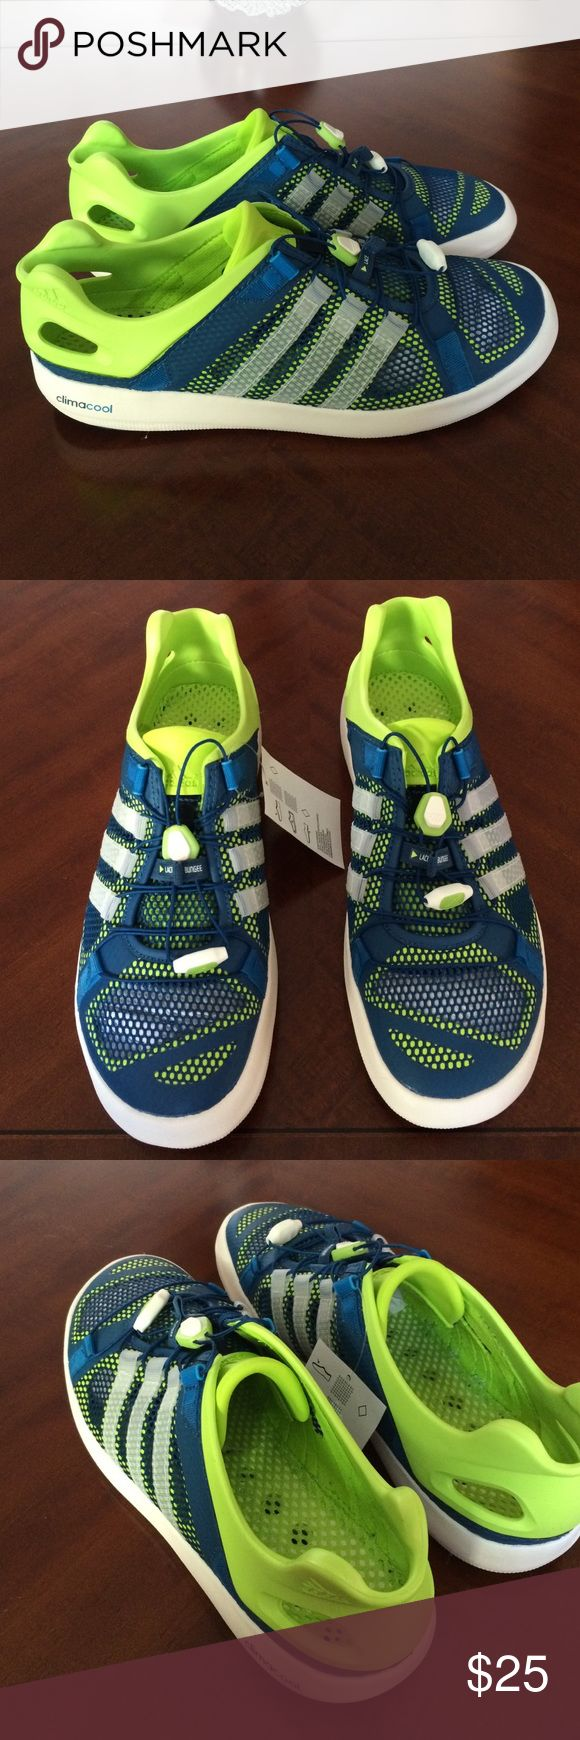 Adidas boat sneakers summer shoes men new Brand new mens adidas boat shoes. They are size 10.5 men. Like 12-13 womens. They are summer shoes meant to get wet and very breathable. Nice colors perfect for the hot weather. Thanks Adidas Shoes Sneakers